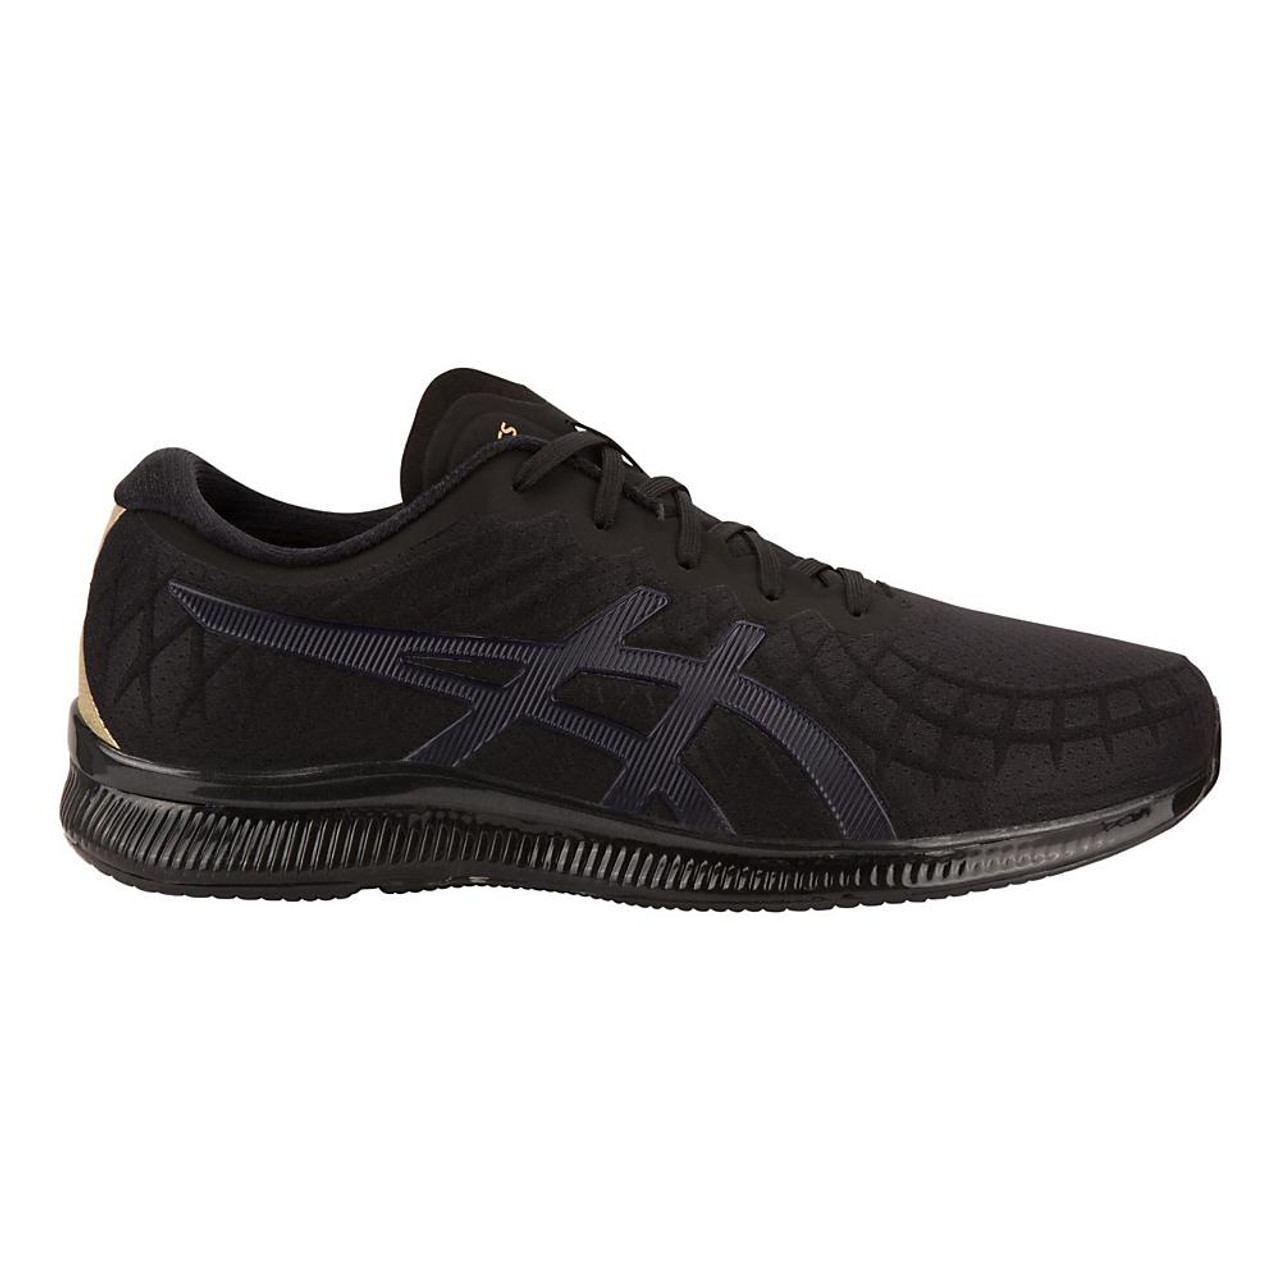 low priced b9687 30686 Men's ASICS GEL-Quantum Infinity